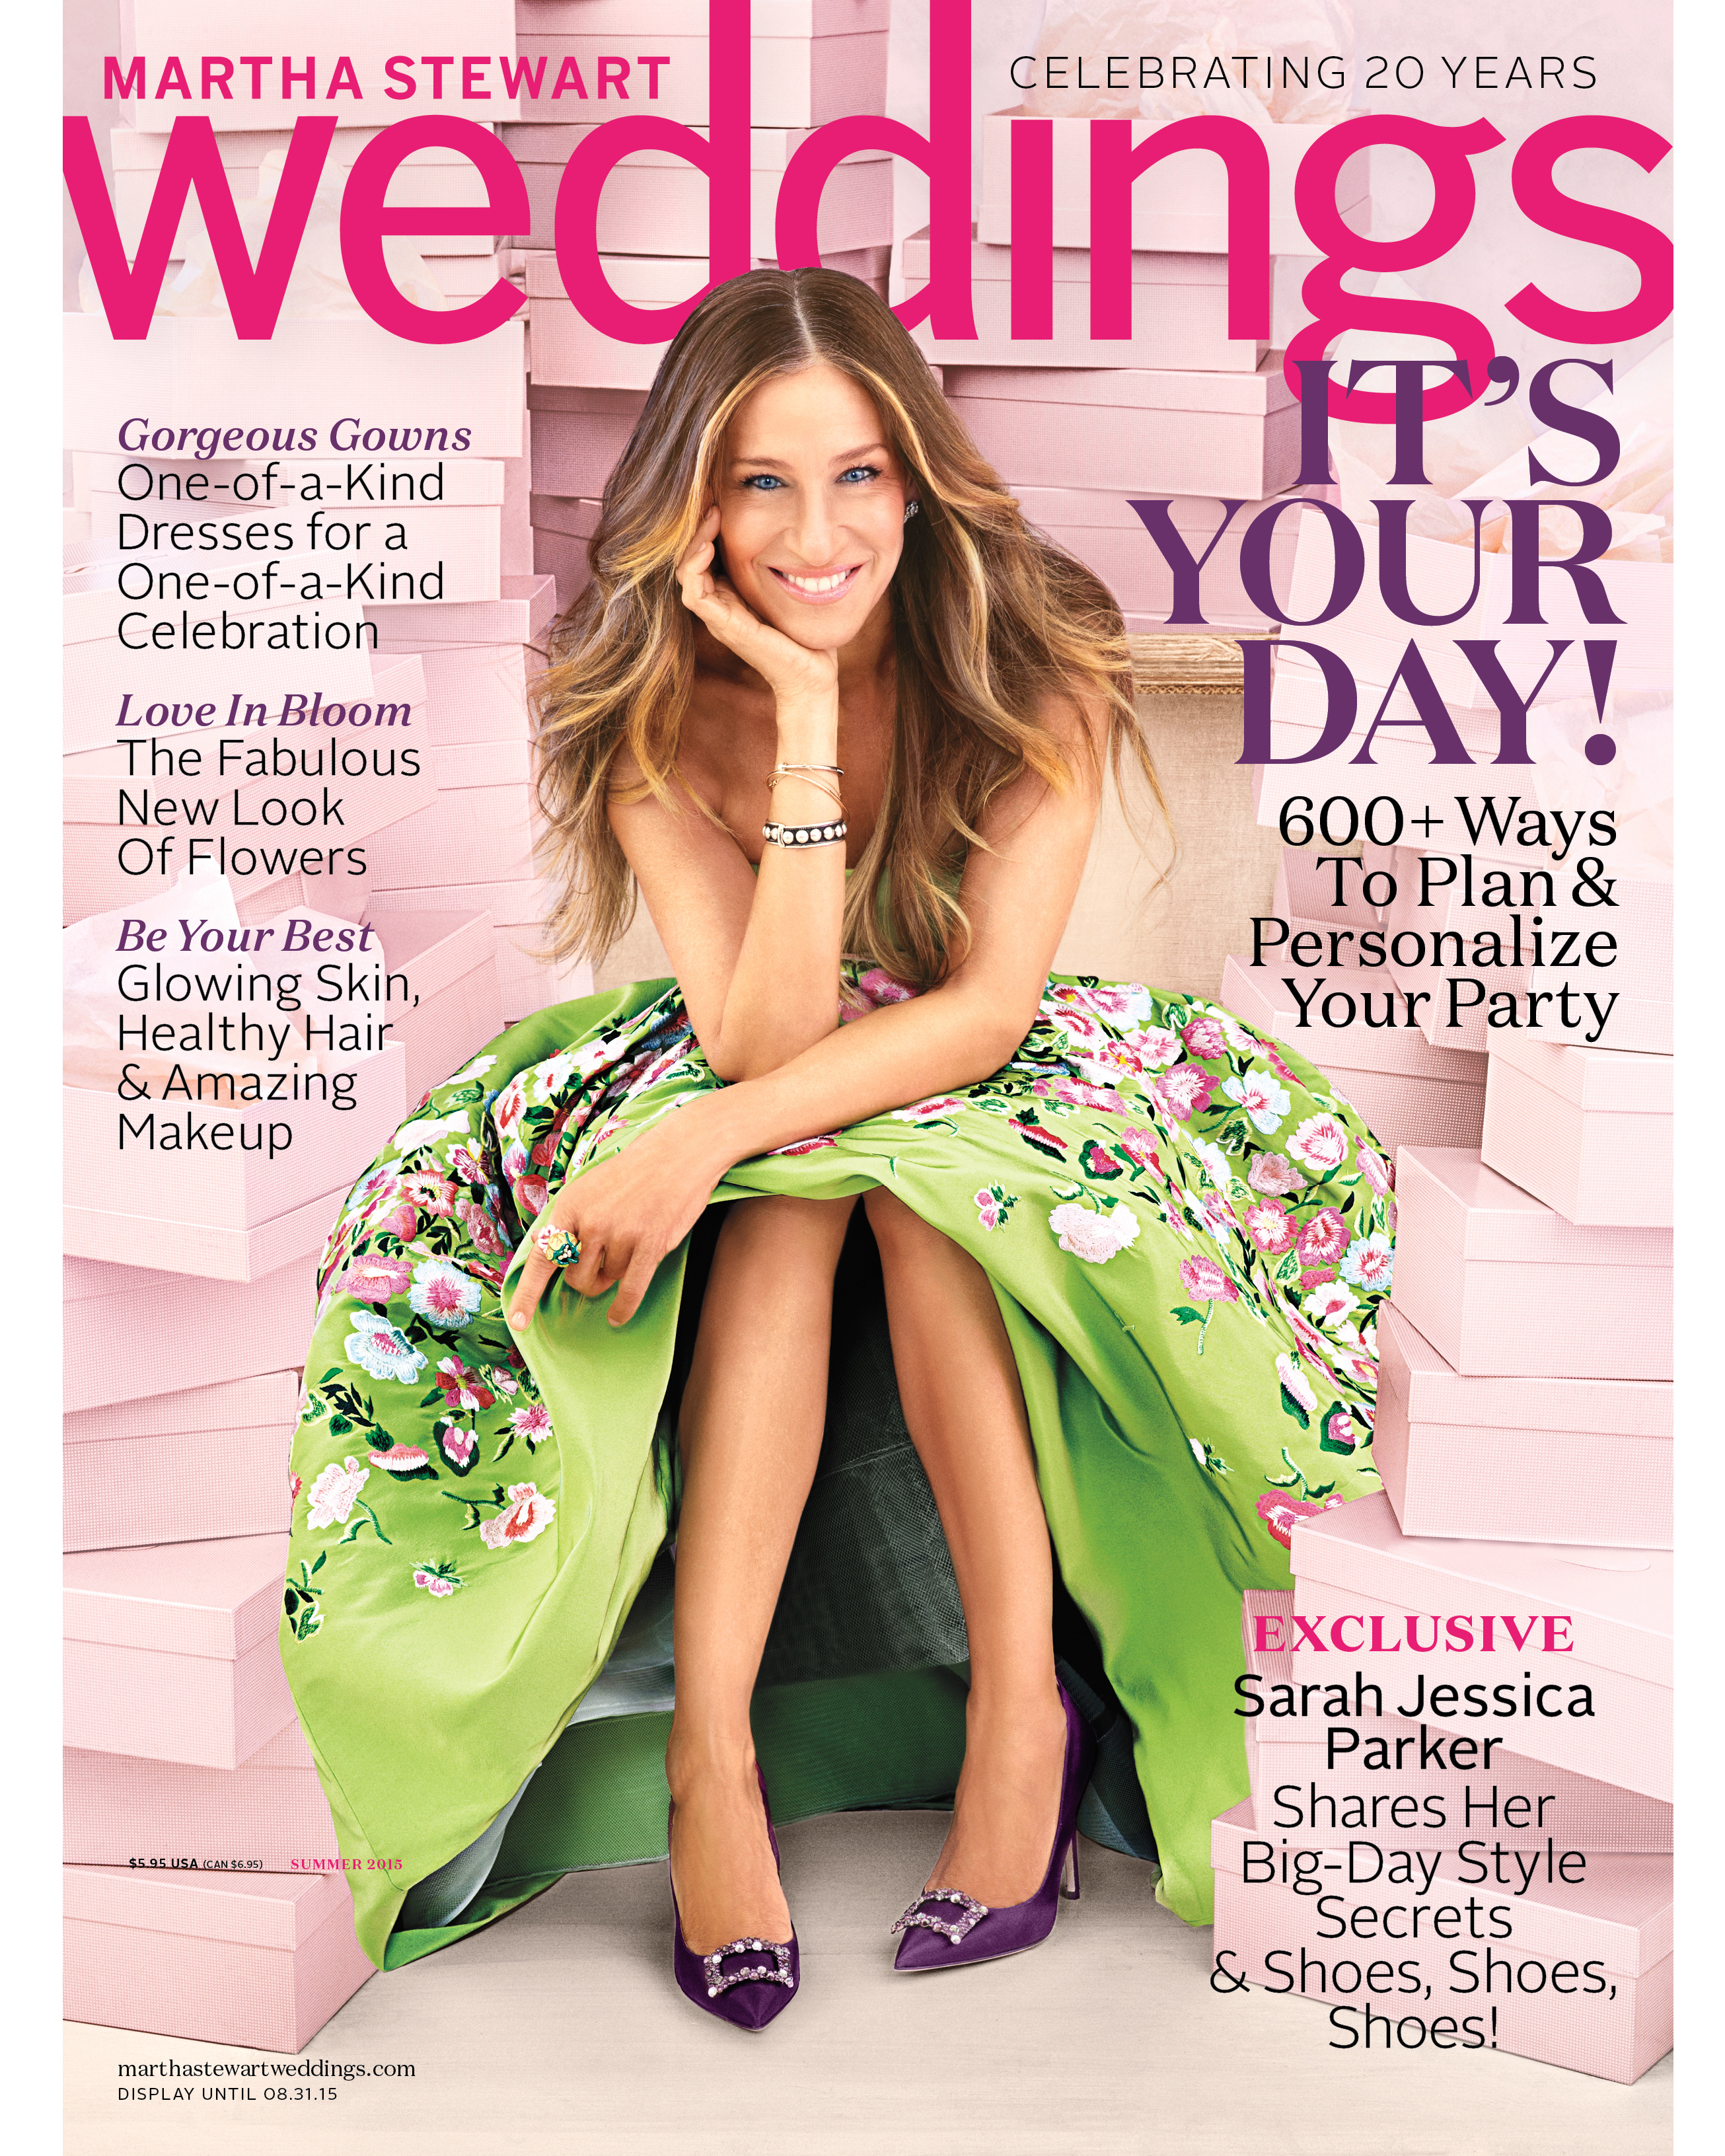 cover-with-text-sarah-jessica-parker-cover-portrait-039-170m-rgb-cmyk-d111918.jpg